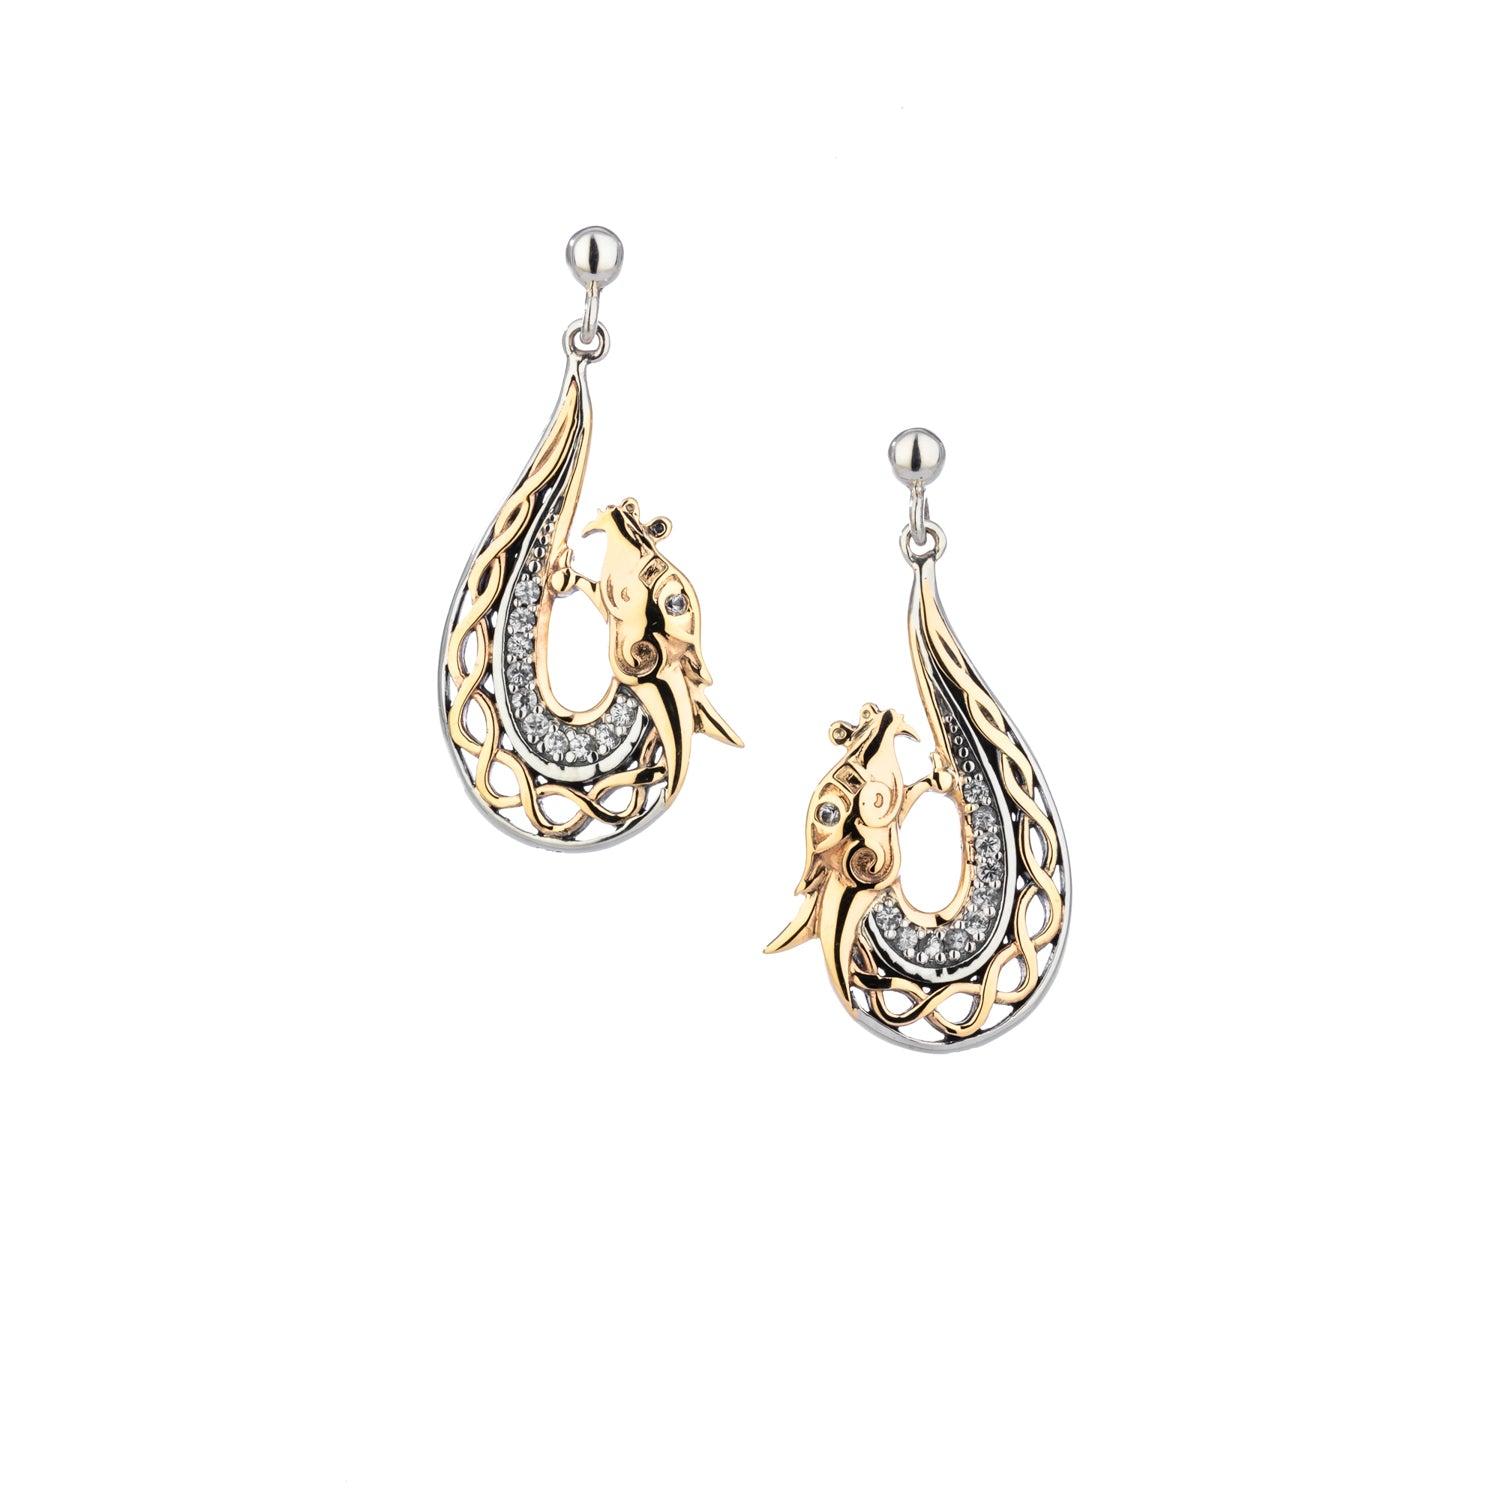 Earrings 10k White Sapphire Dragon Post Earrings from welch and company jewelers near syracuse ny